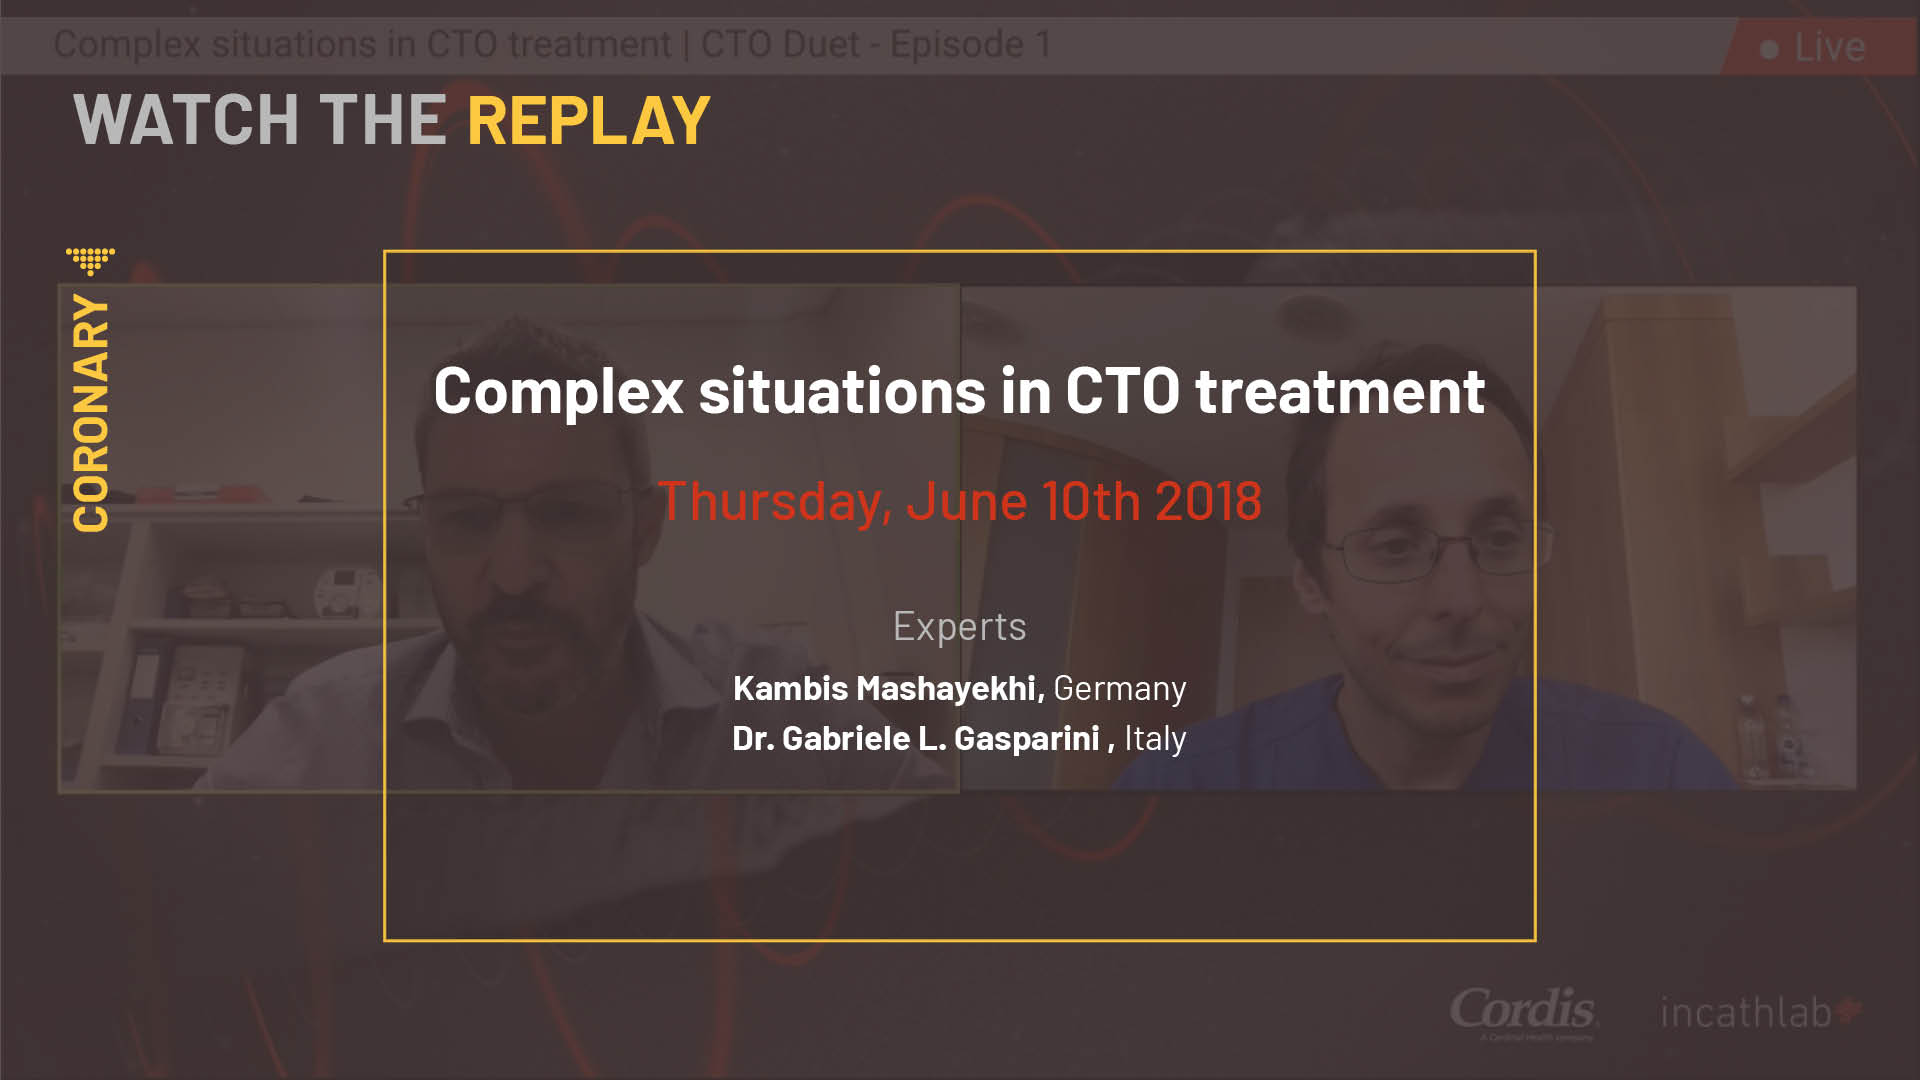 Complex situations in CTO treatment